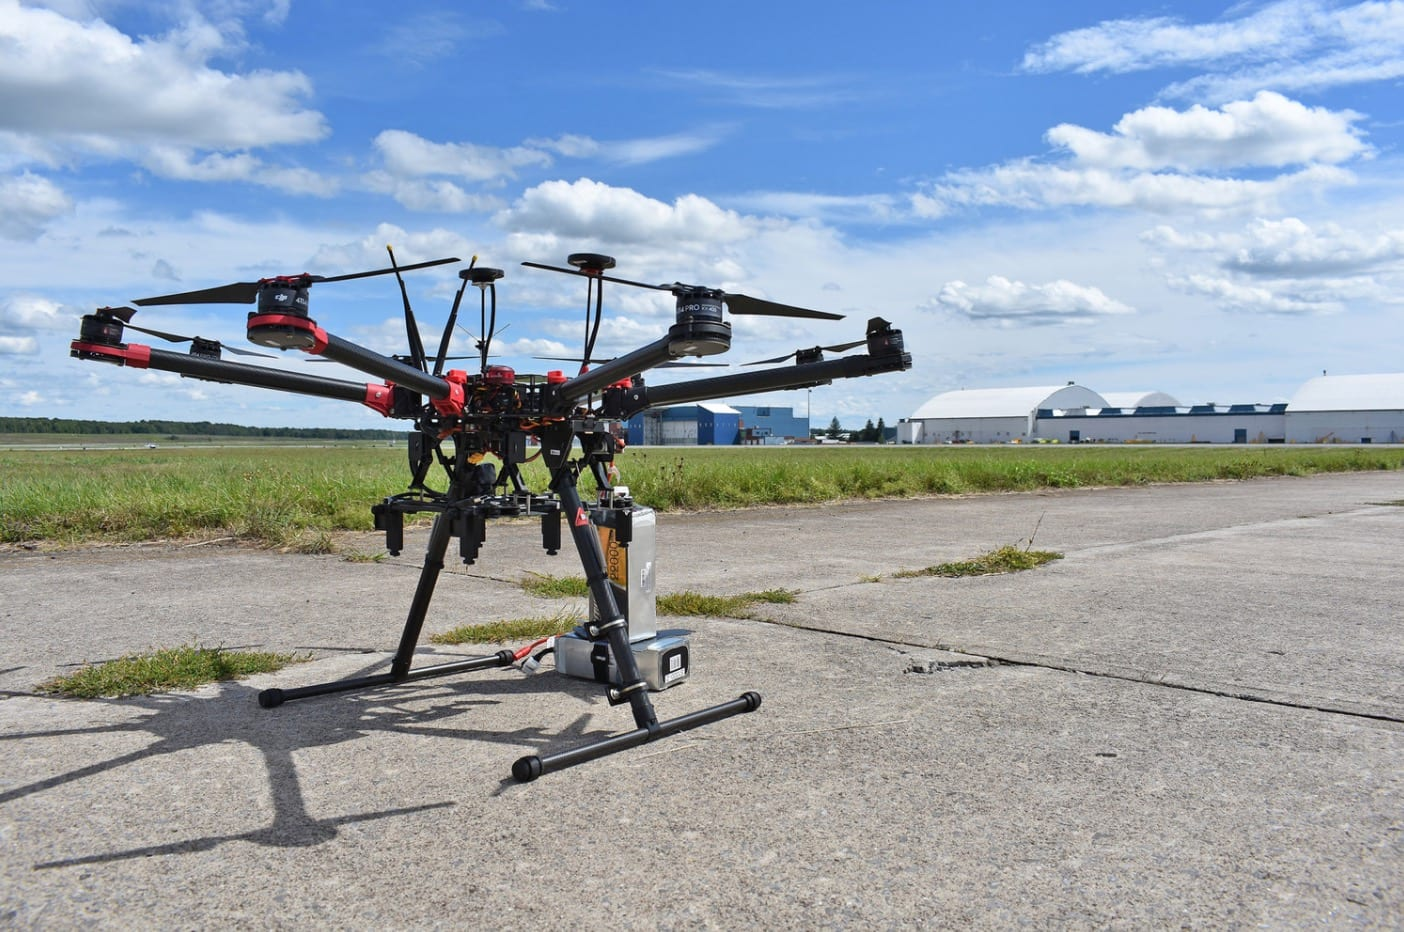 FAA starts Remote ID drone test flights at Griffiss Airport - Officials suggest Rome drone test site to Walmart and Amazon